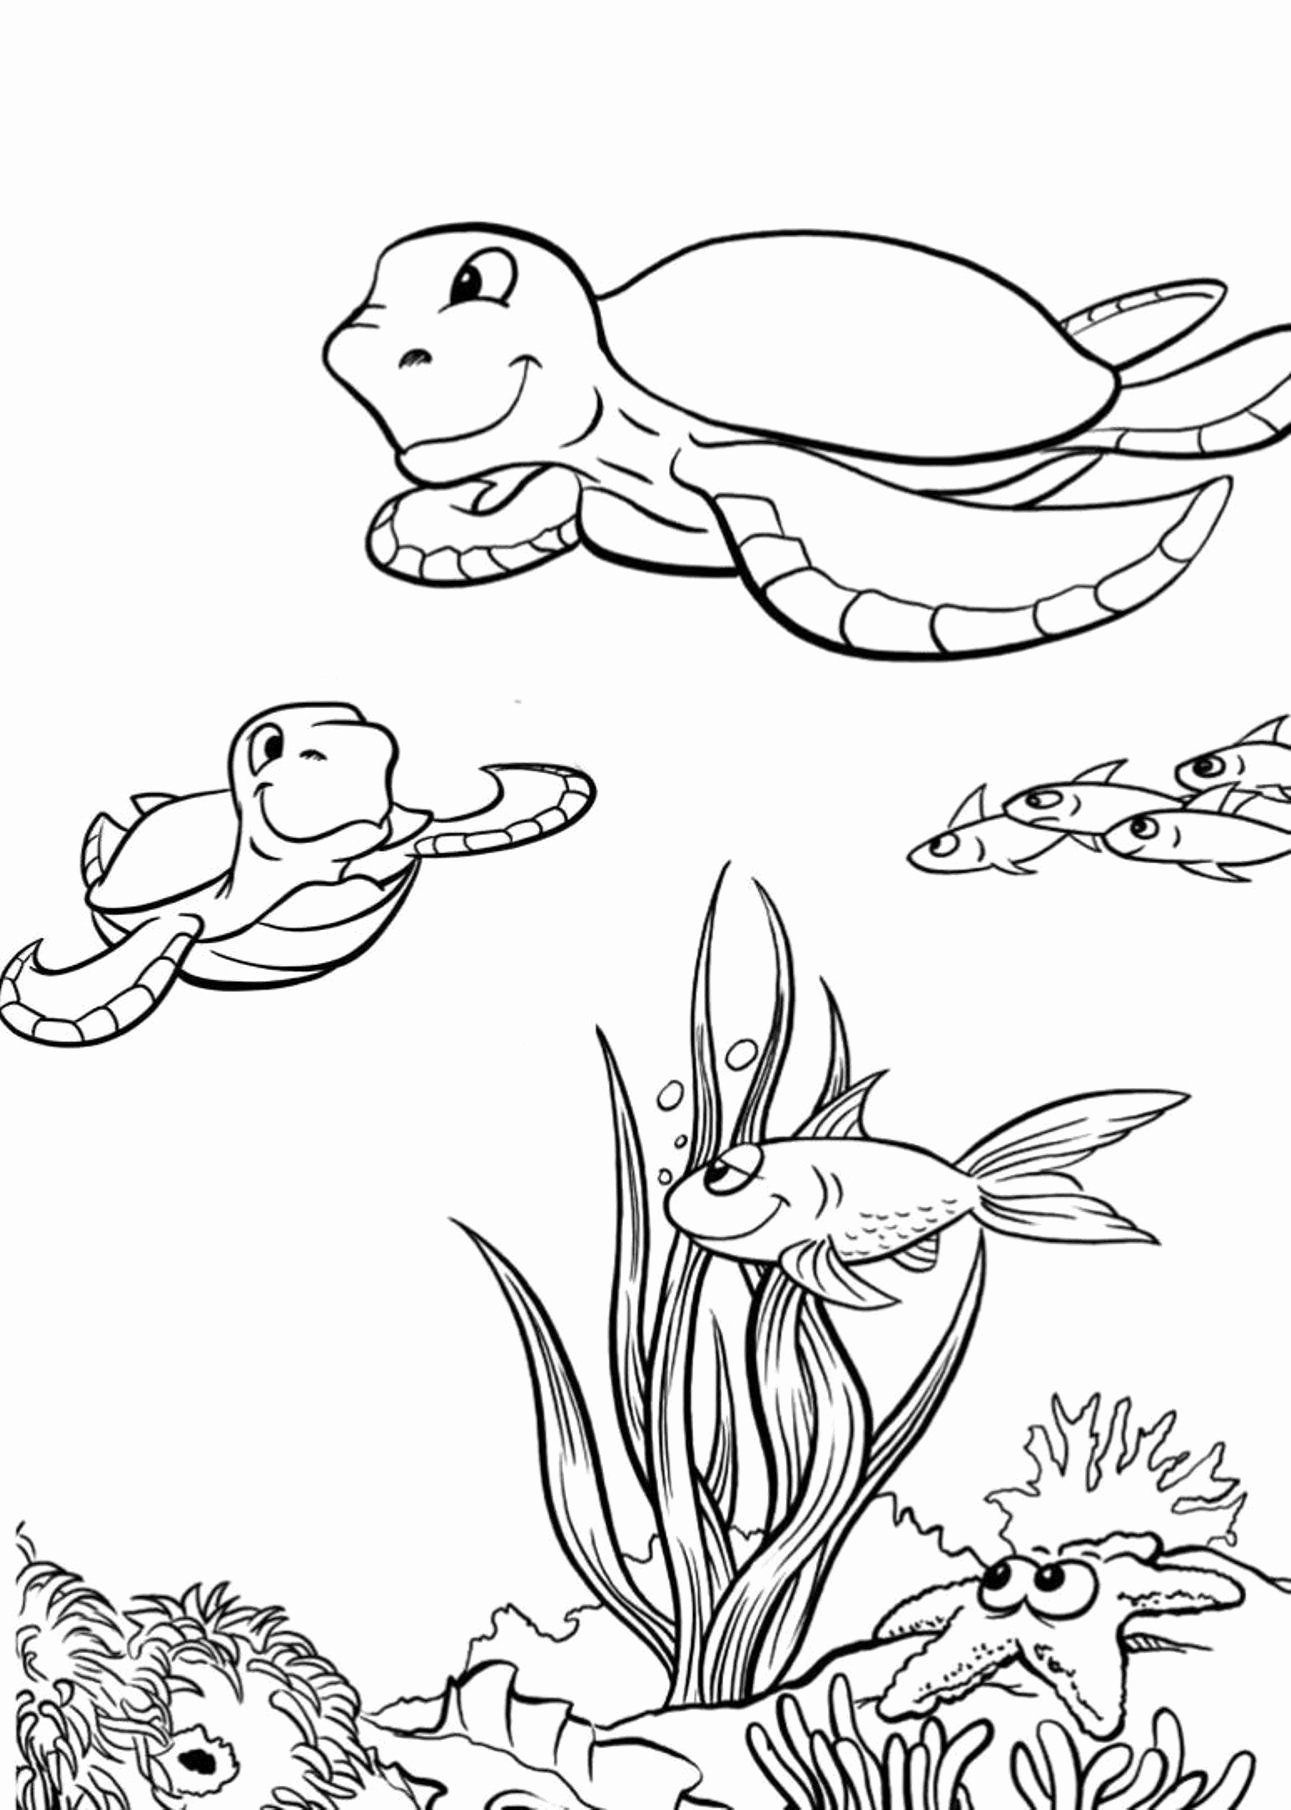 Coloring Pages Animal Habitats in 2020 Turtle coloring